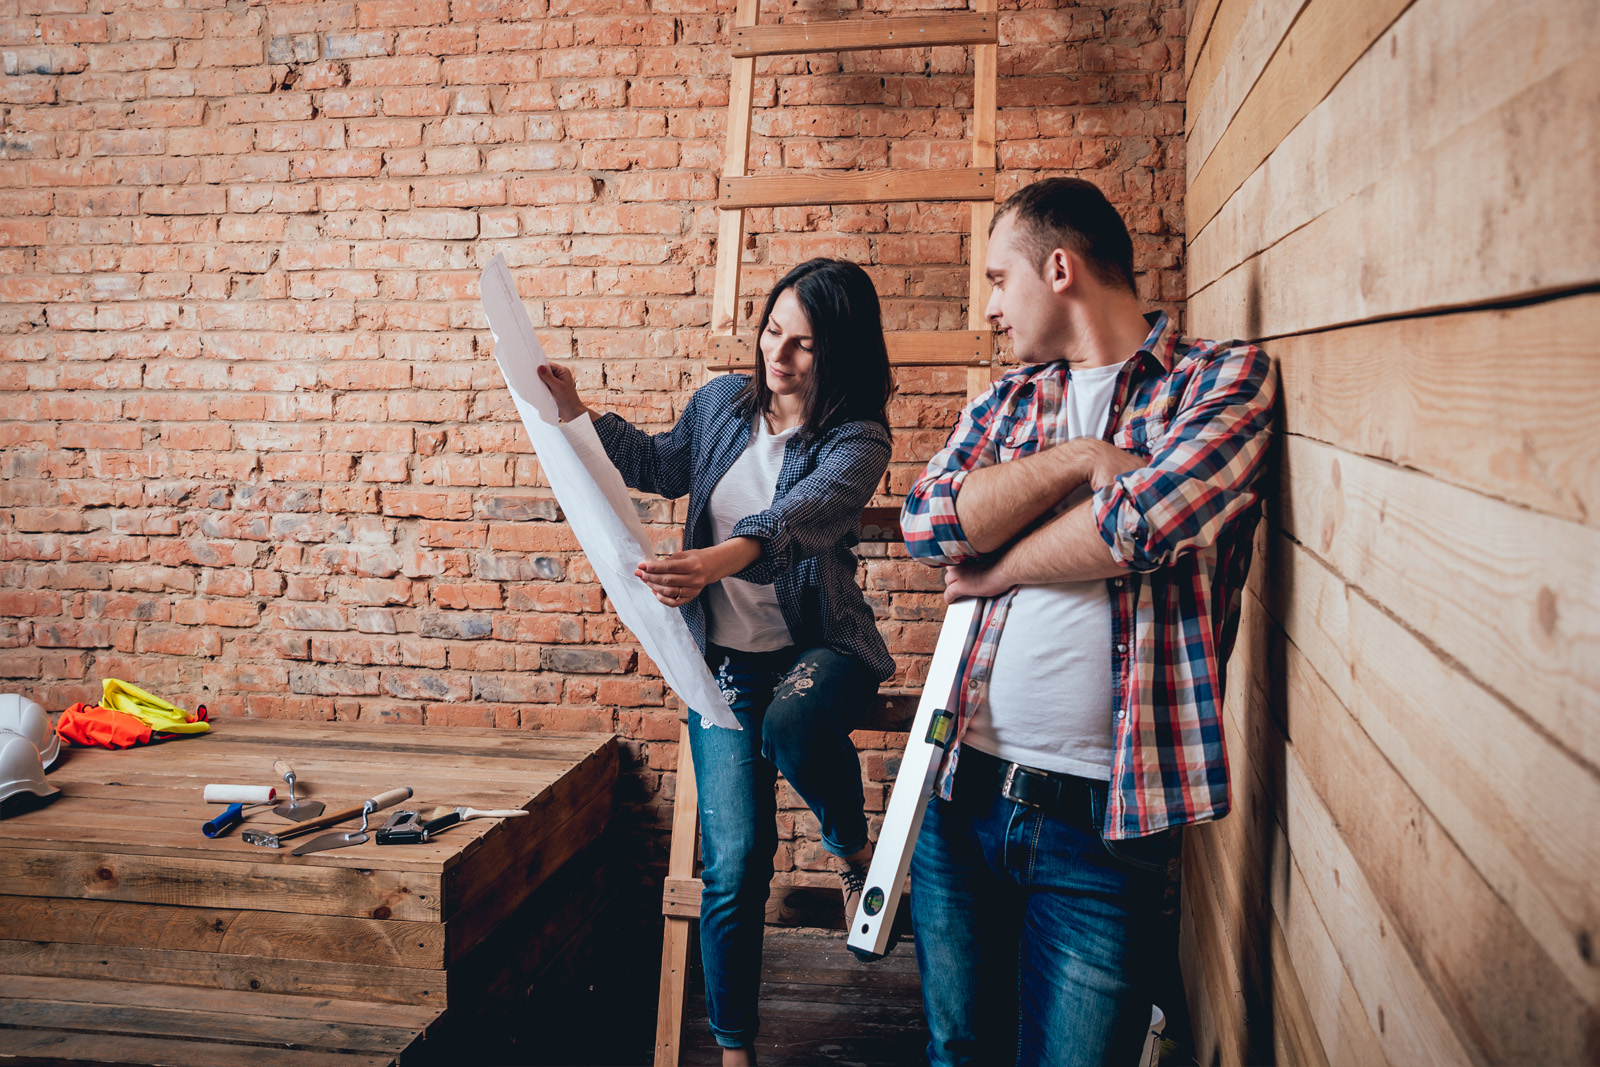 Cherie-Barber_Renovating-For-Profit_ Rookie-Renovator-Mistakes_couple